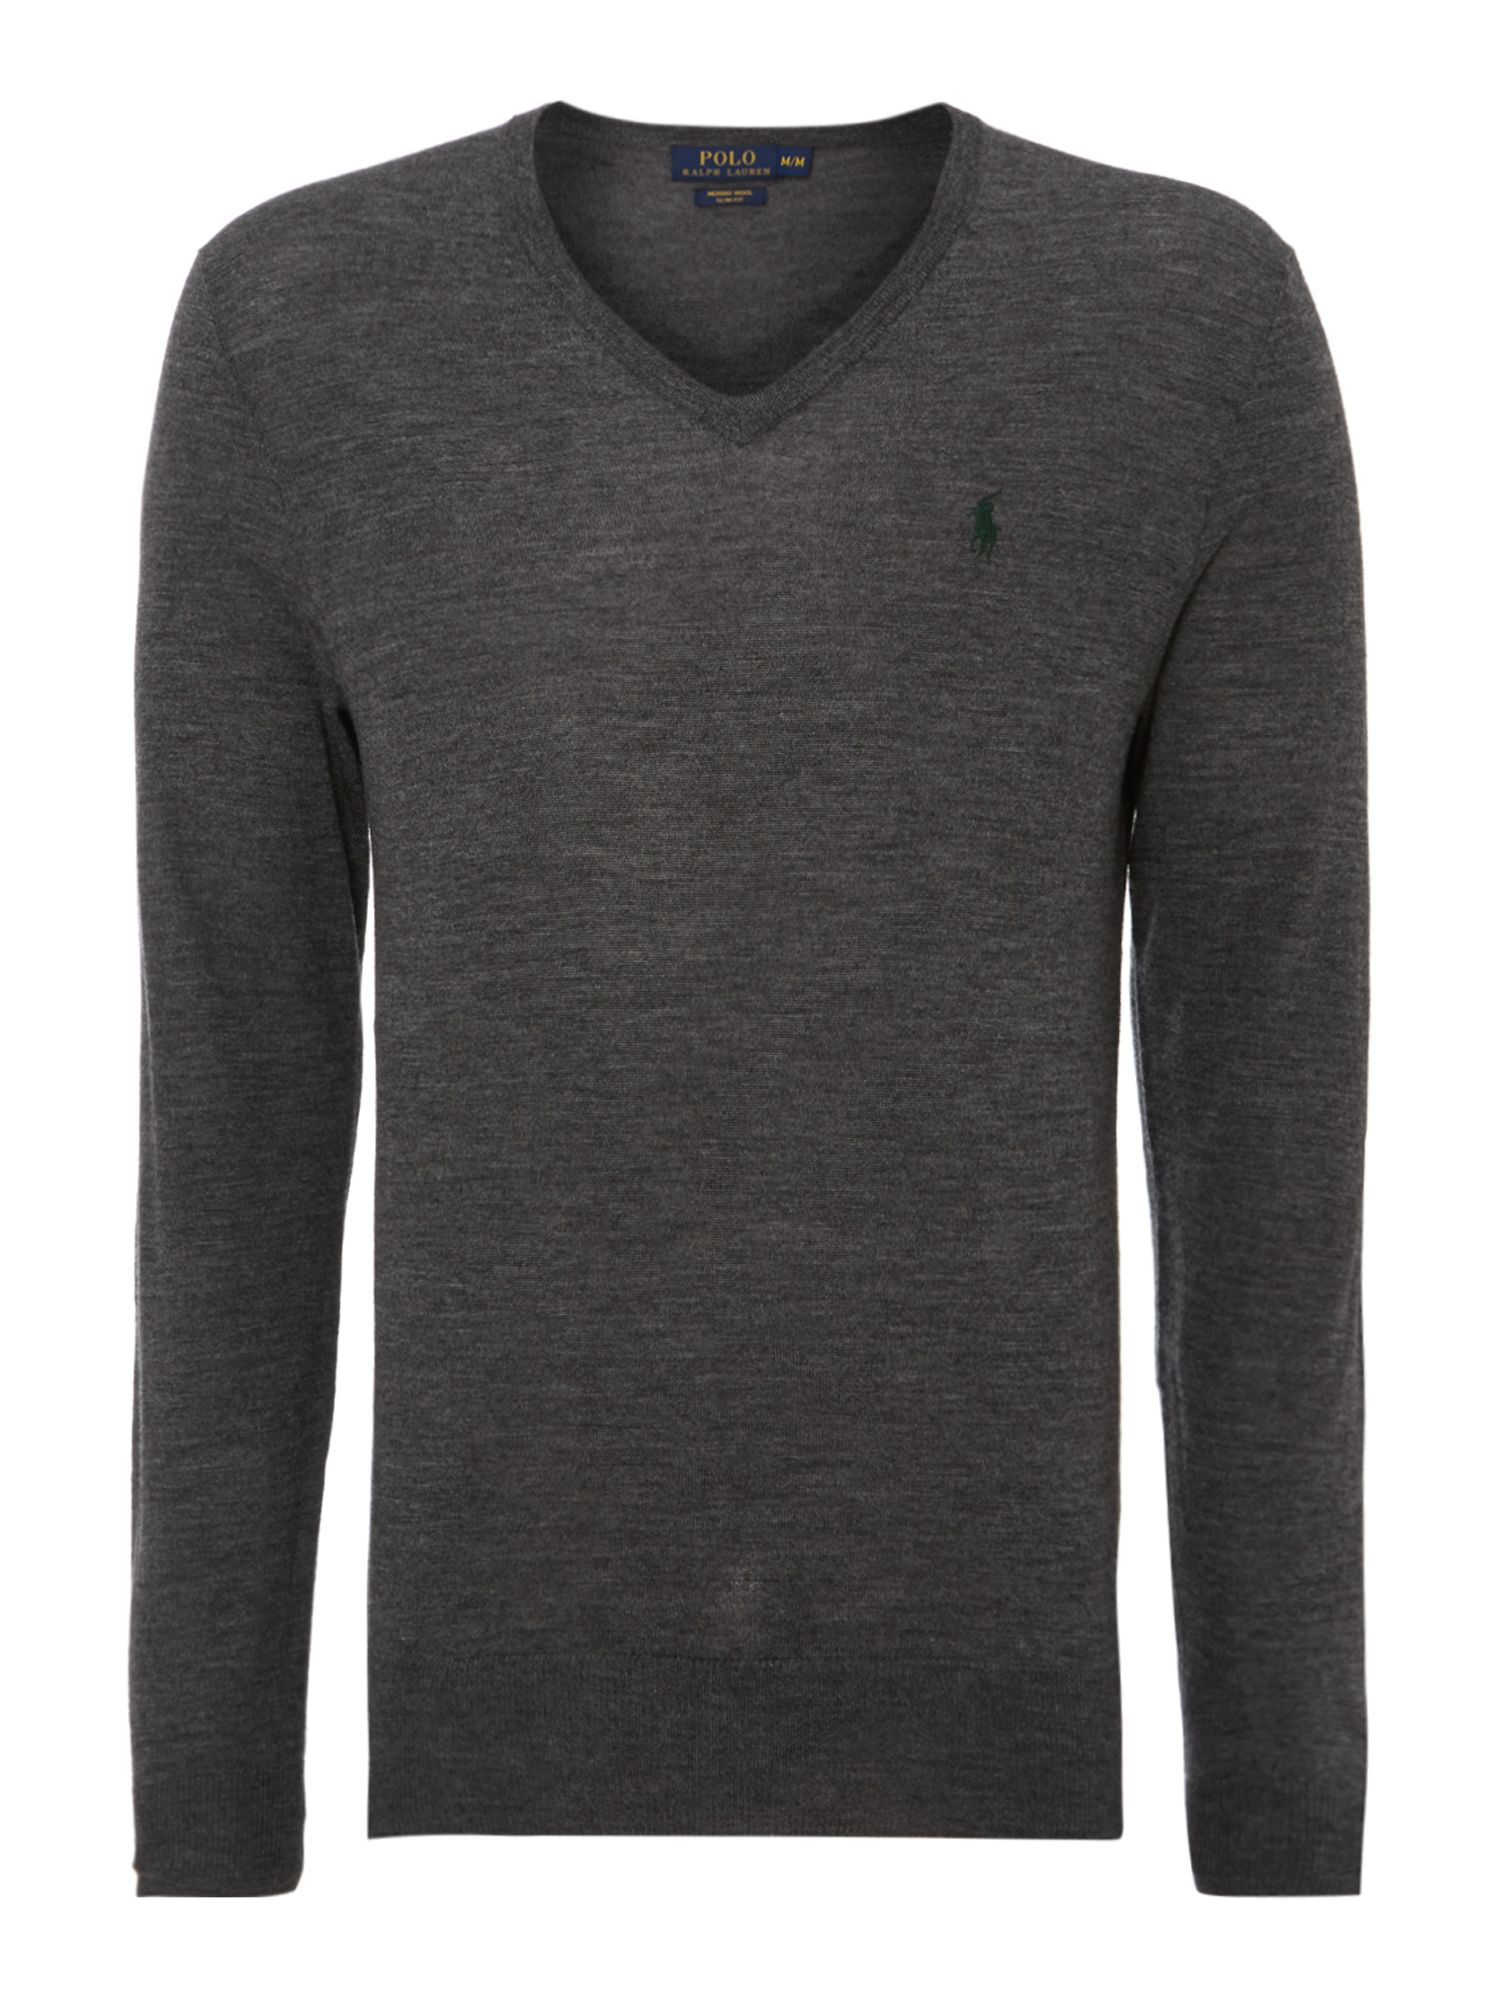 Vneck slim fit merino wool jumper